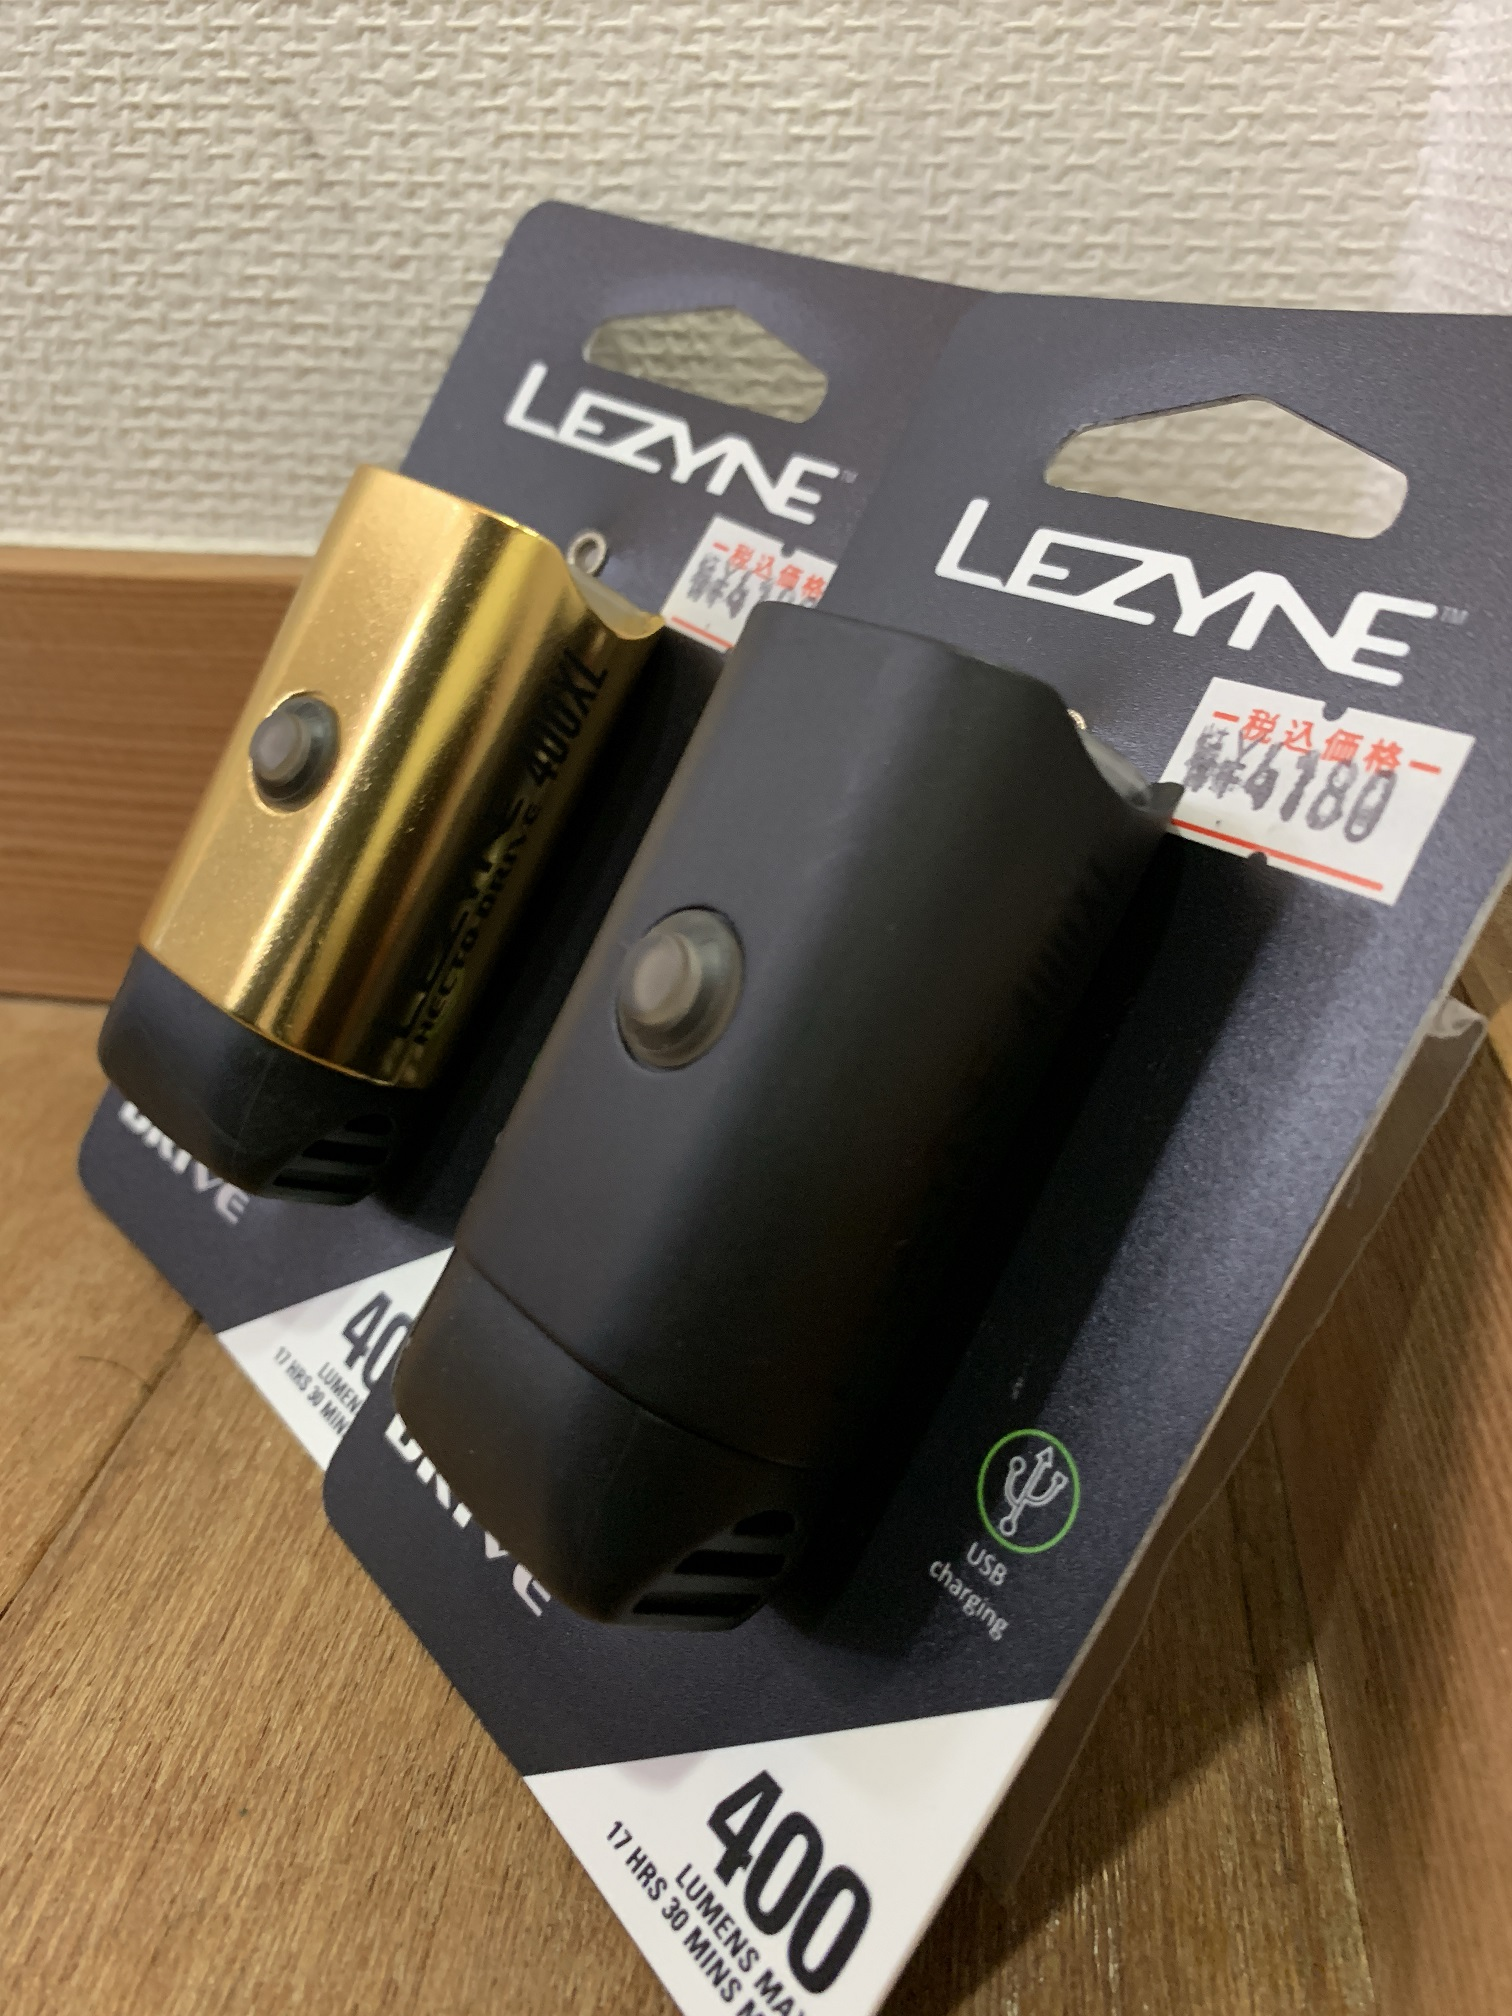 LEZYNEのライトNEWCOLOR登場です